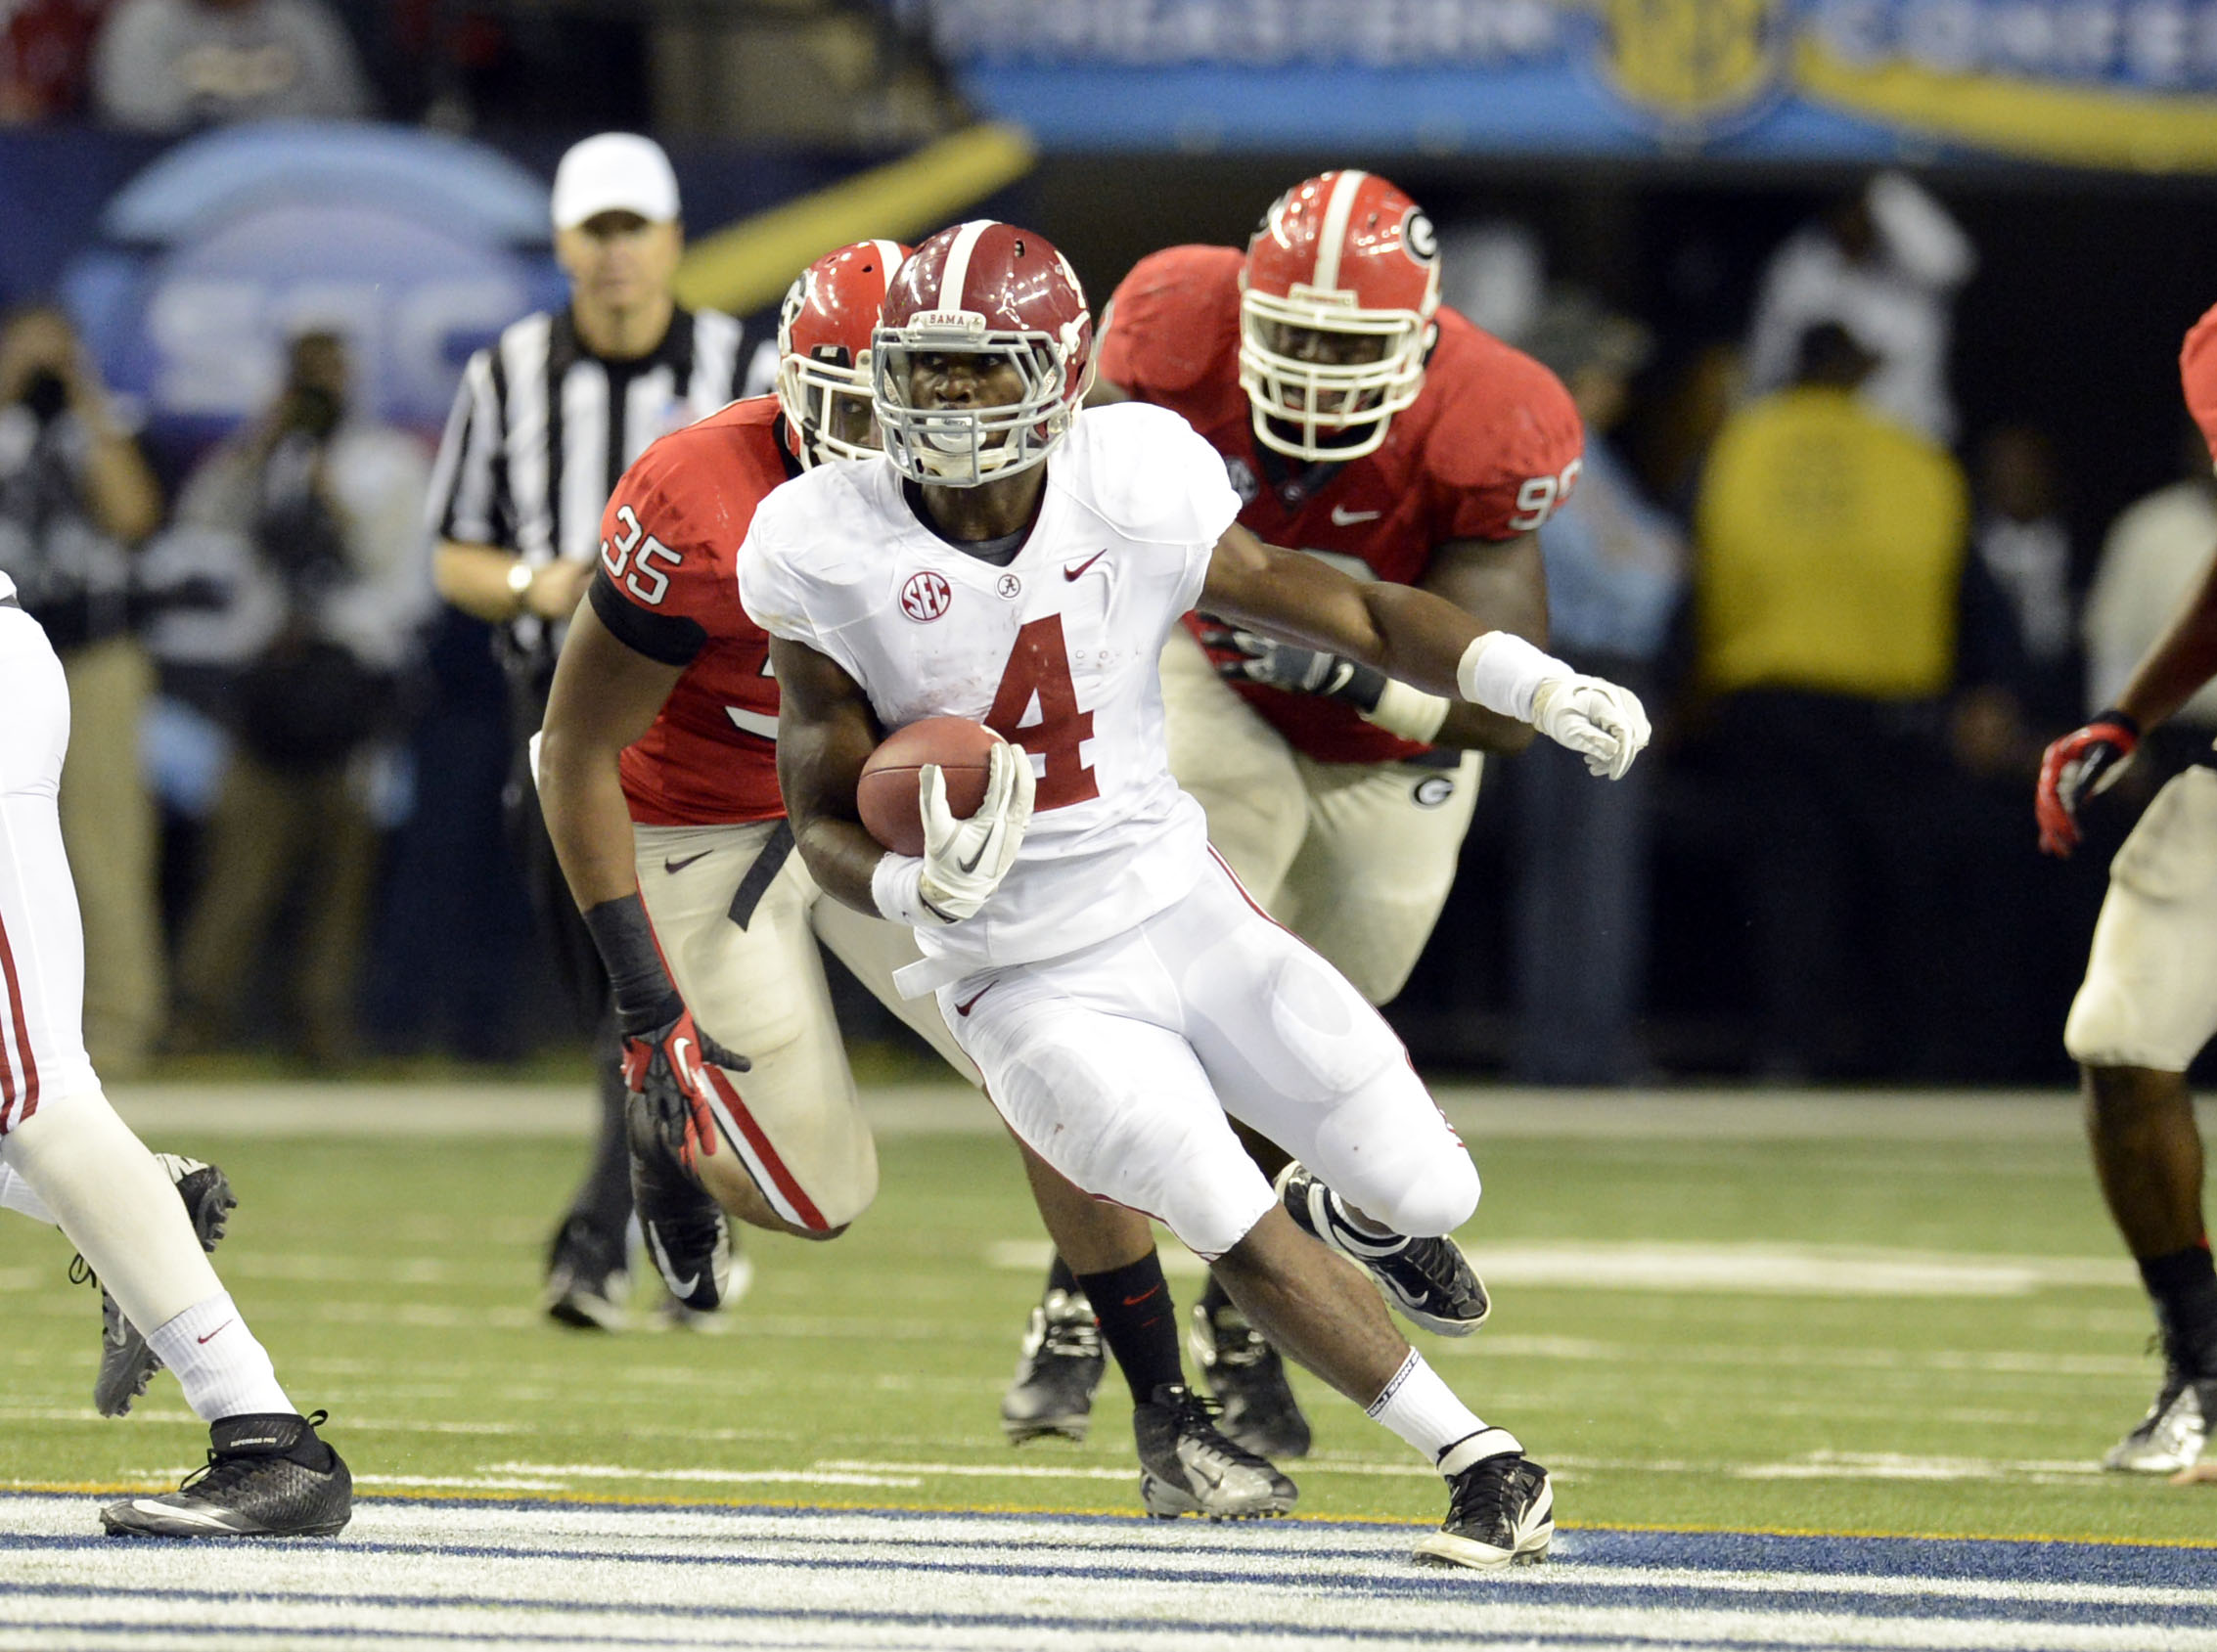 Alabama's T.J. Yeldon runs against Georgia (Photo: John David Mercer, USA TODAY Sports)